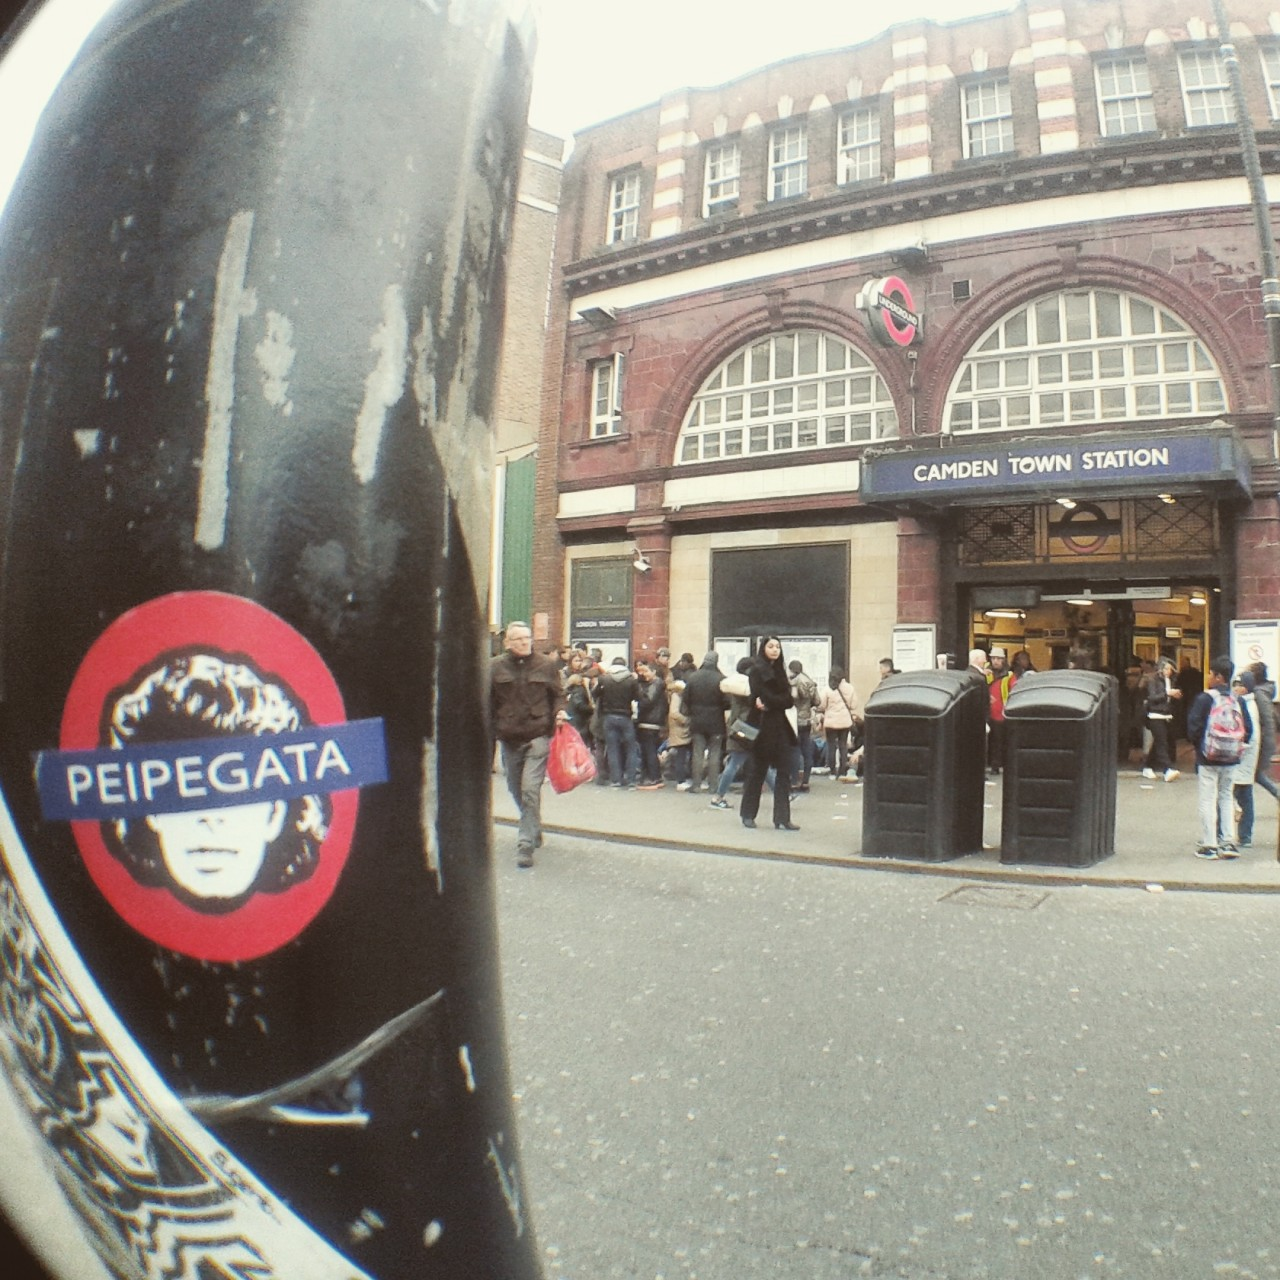 Peipegata sticker slap stickerart  bombardeando Londres-Uk